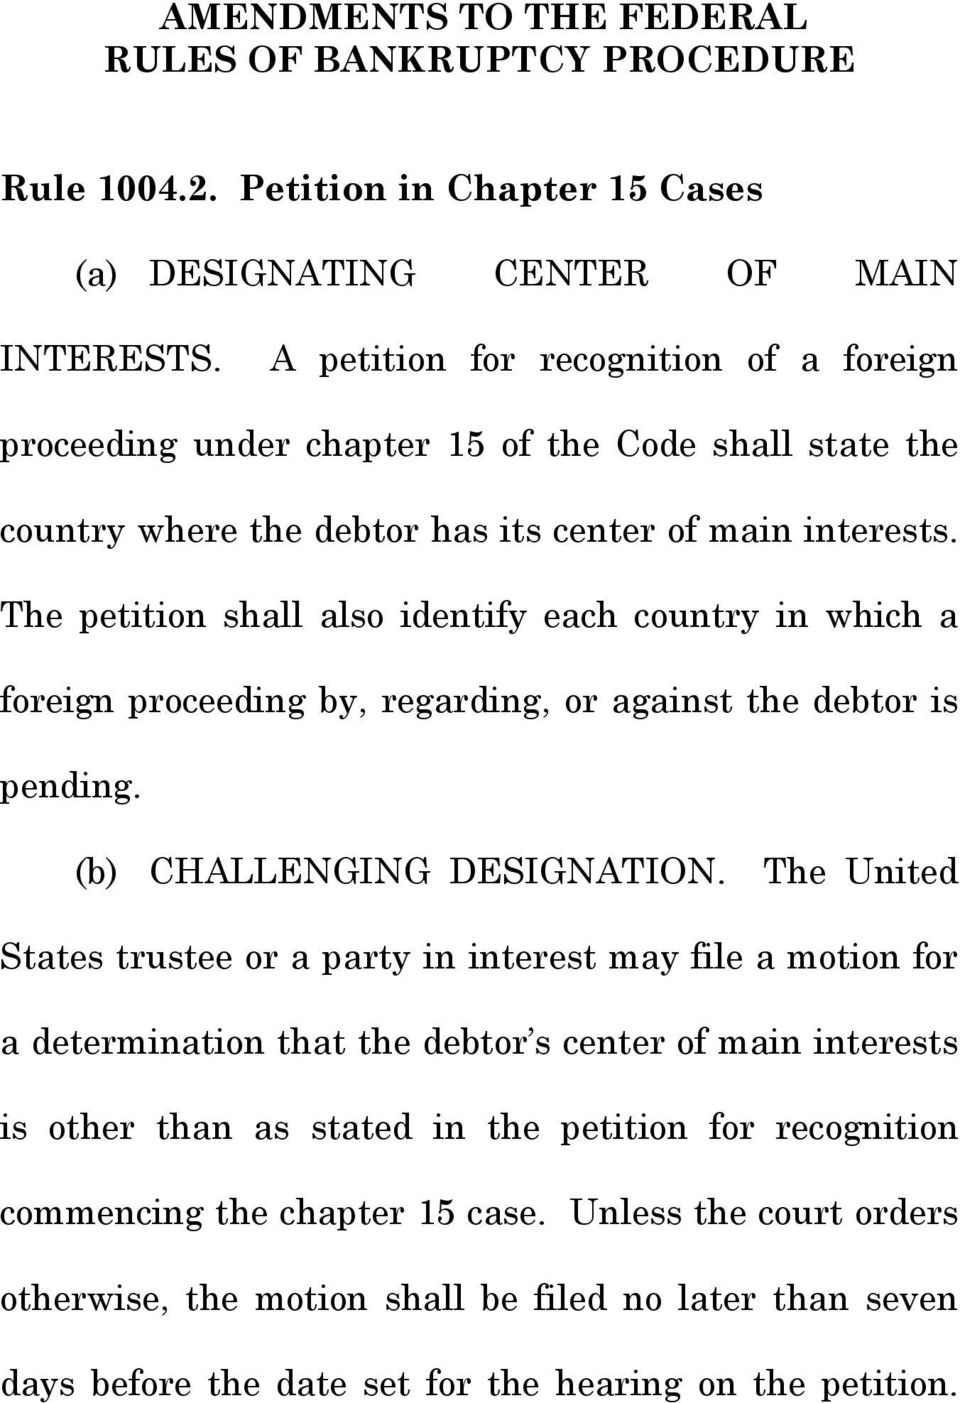 The petition shall also identify each country in which a foreign proceeding by, regarding, or against the debtor is pending. (b) CHALLENGING DESIGNATION.